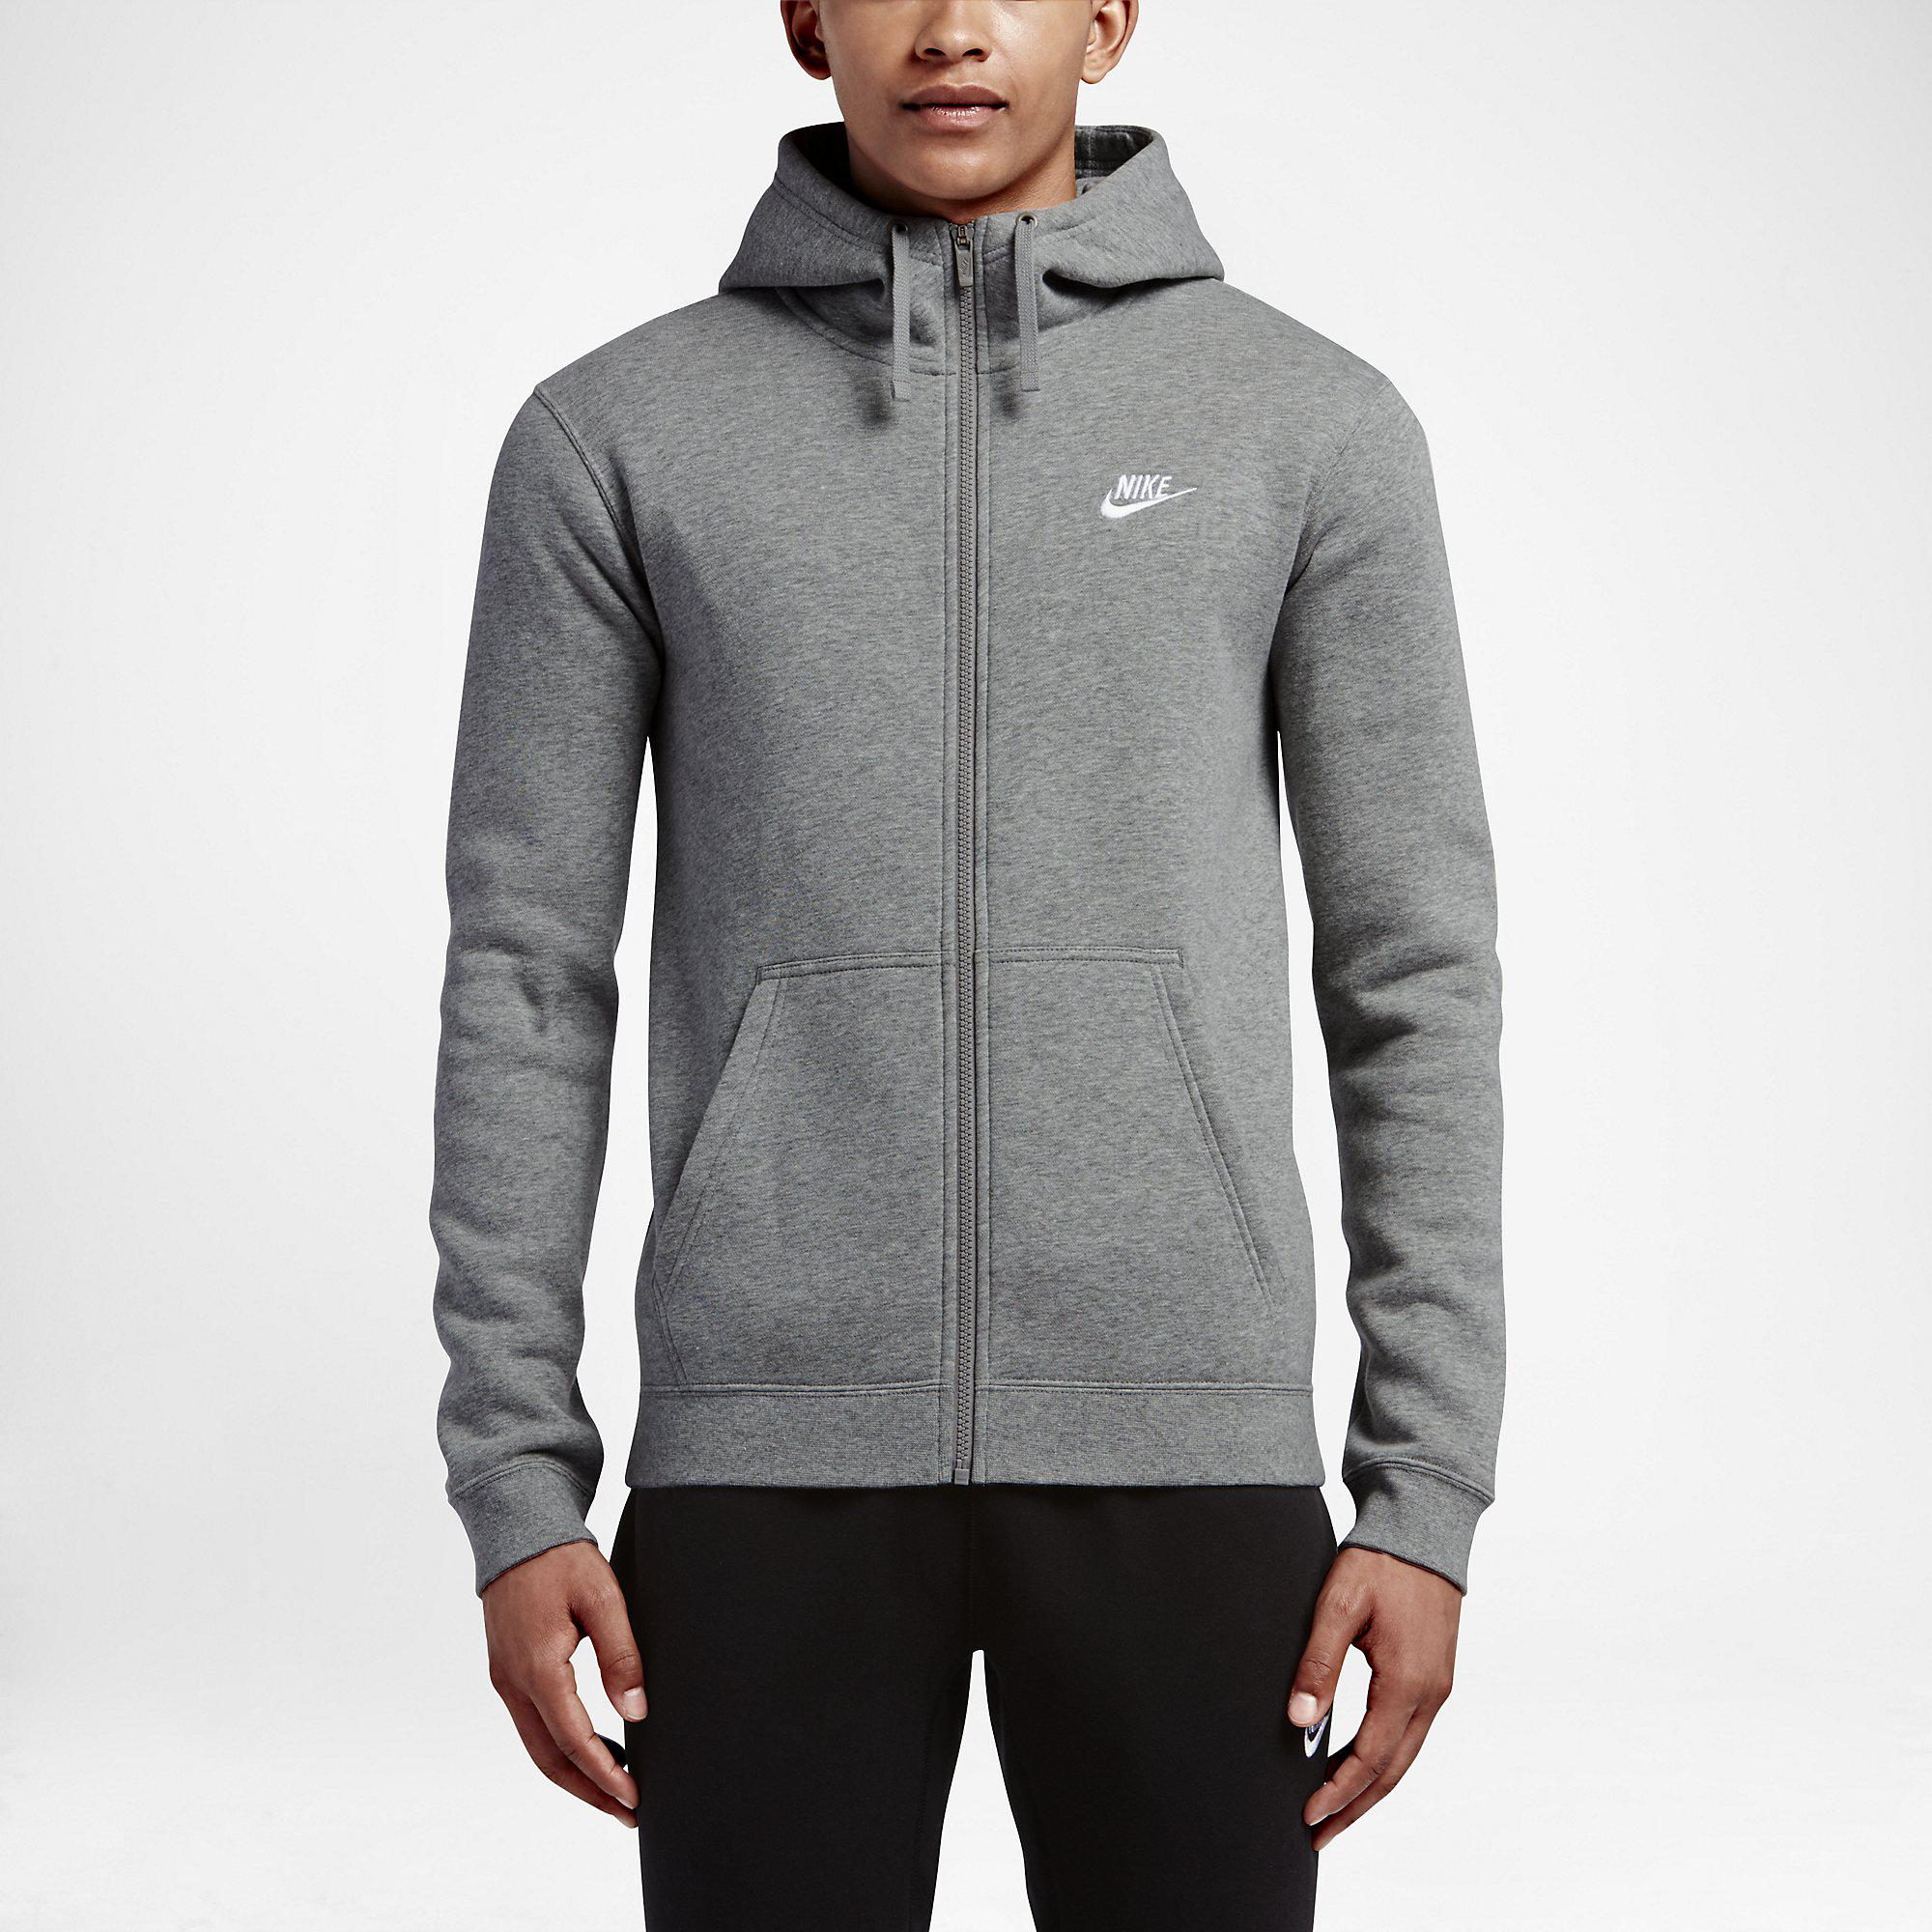 8511be8c9b81 Nike Mens Sportswear Full-Zip Hoodie - Dark Grey Heather - Tennisnuts.com